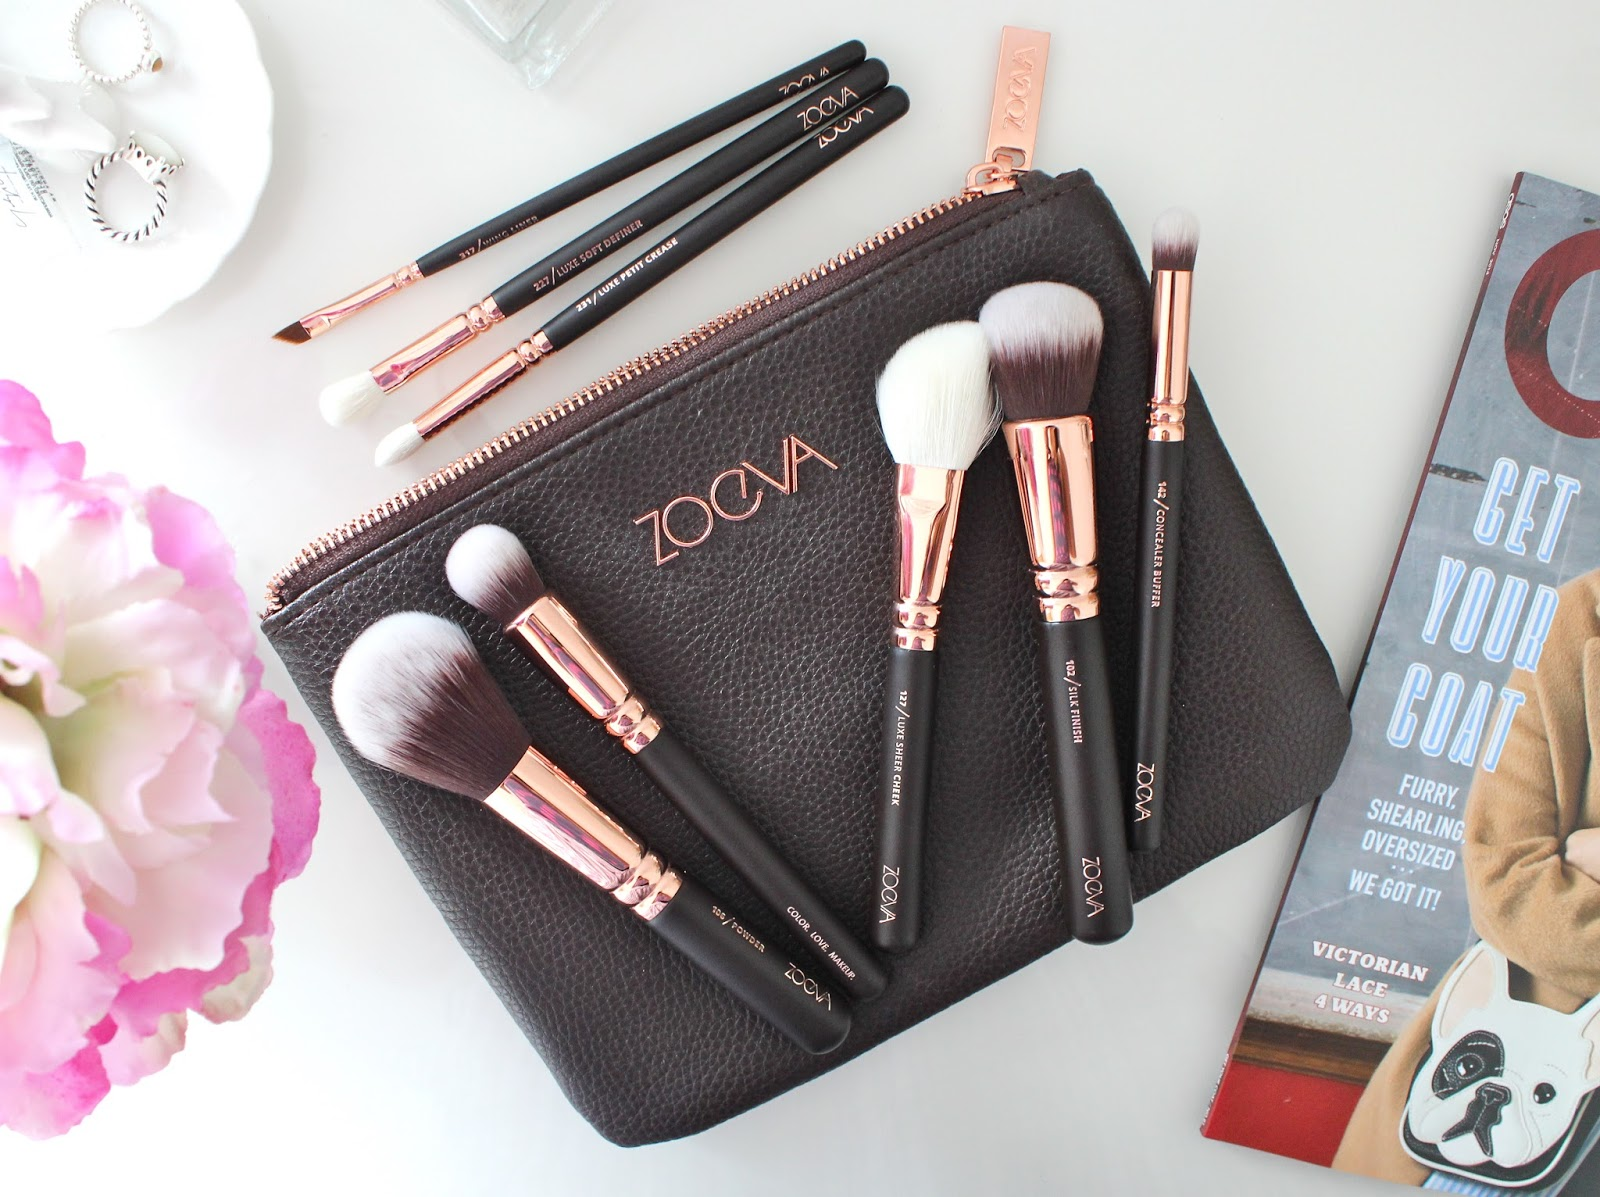 Zoeva Rose Golden Luxury Brush Set, Zoeva Rose Golden Luxury Brush Set Review, Zoeva Makeup Brushes